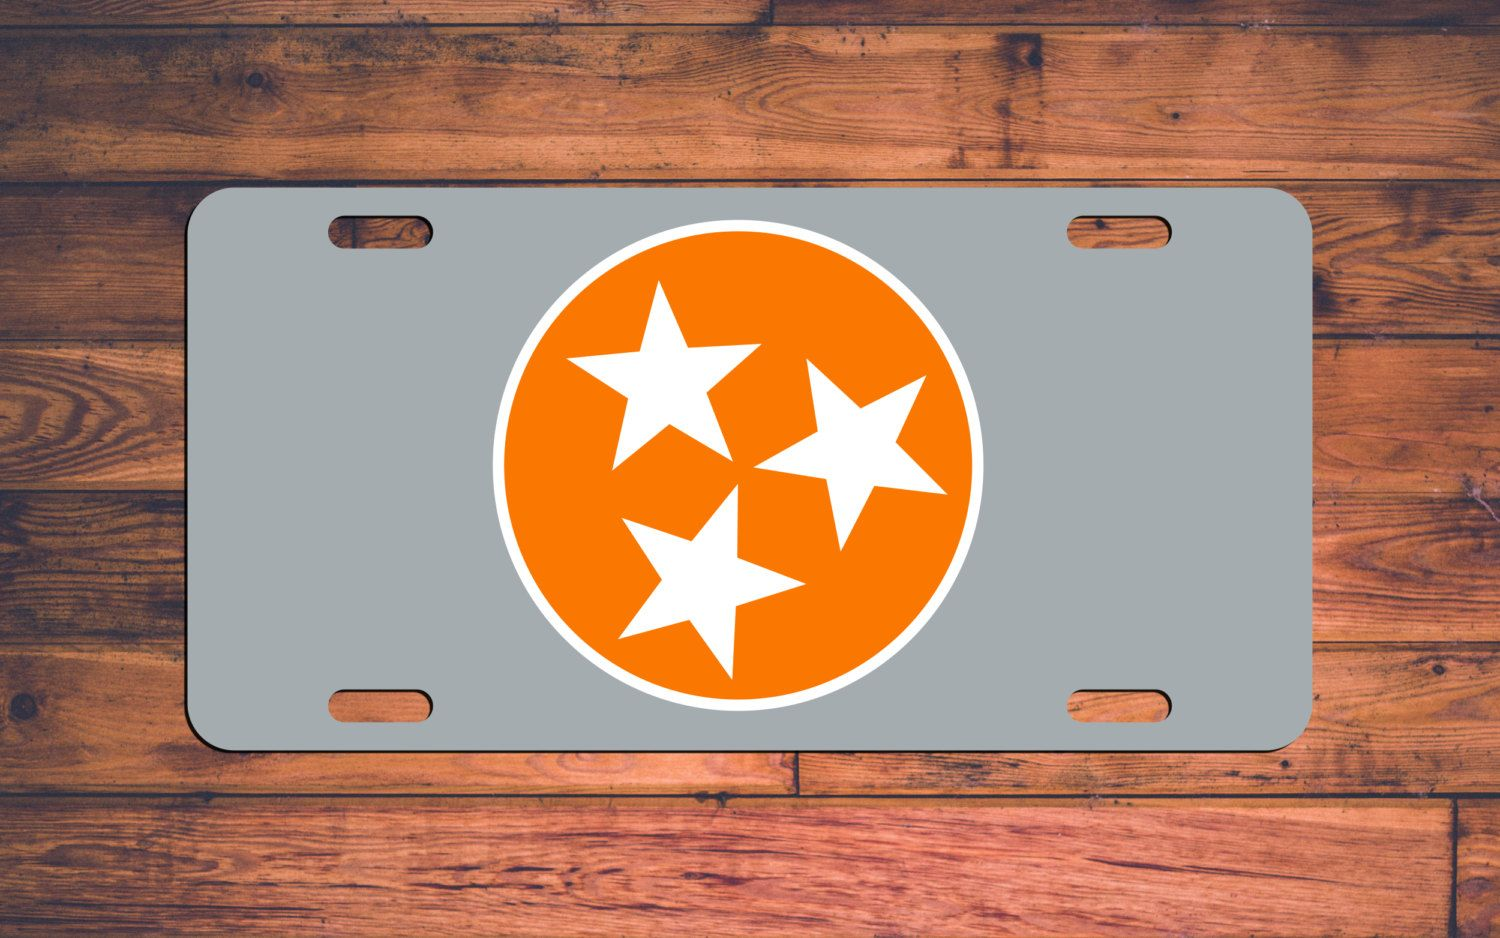 Tennessee VOLS License Plate TN Volunteers Car Tag - 3 Stars Orange ...